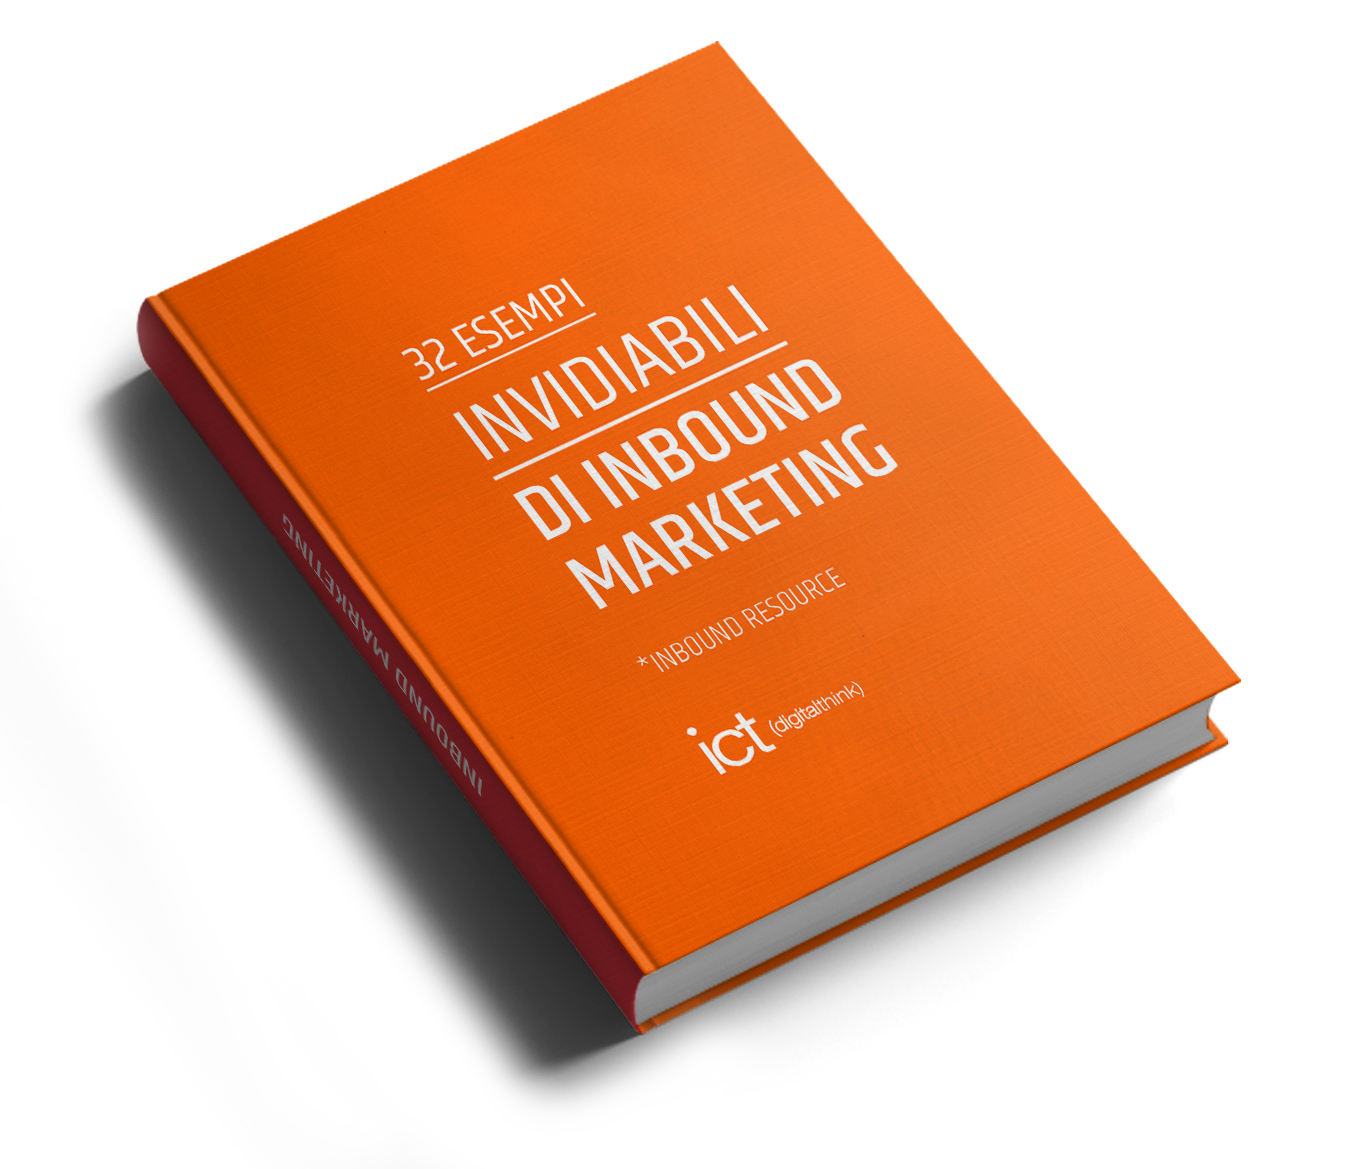 32 ESEMPI INVIDIABILI DI INBOUND MARKETING